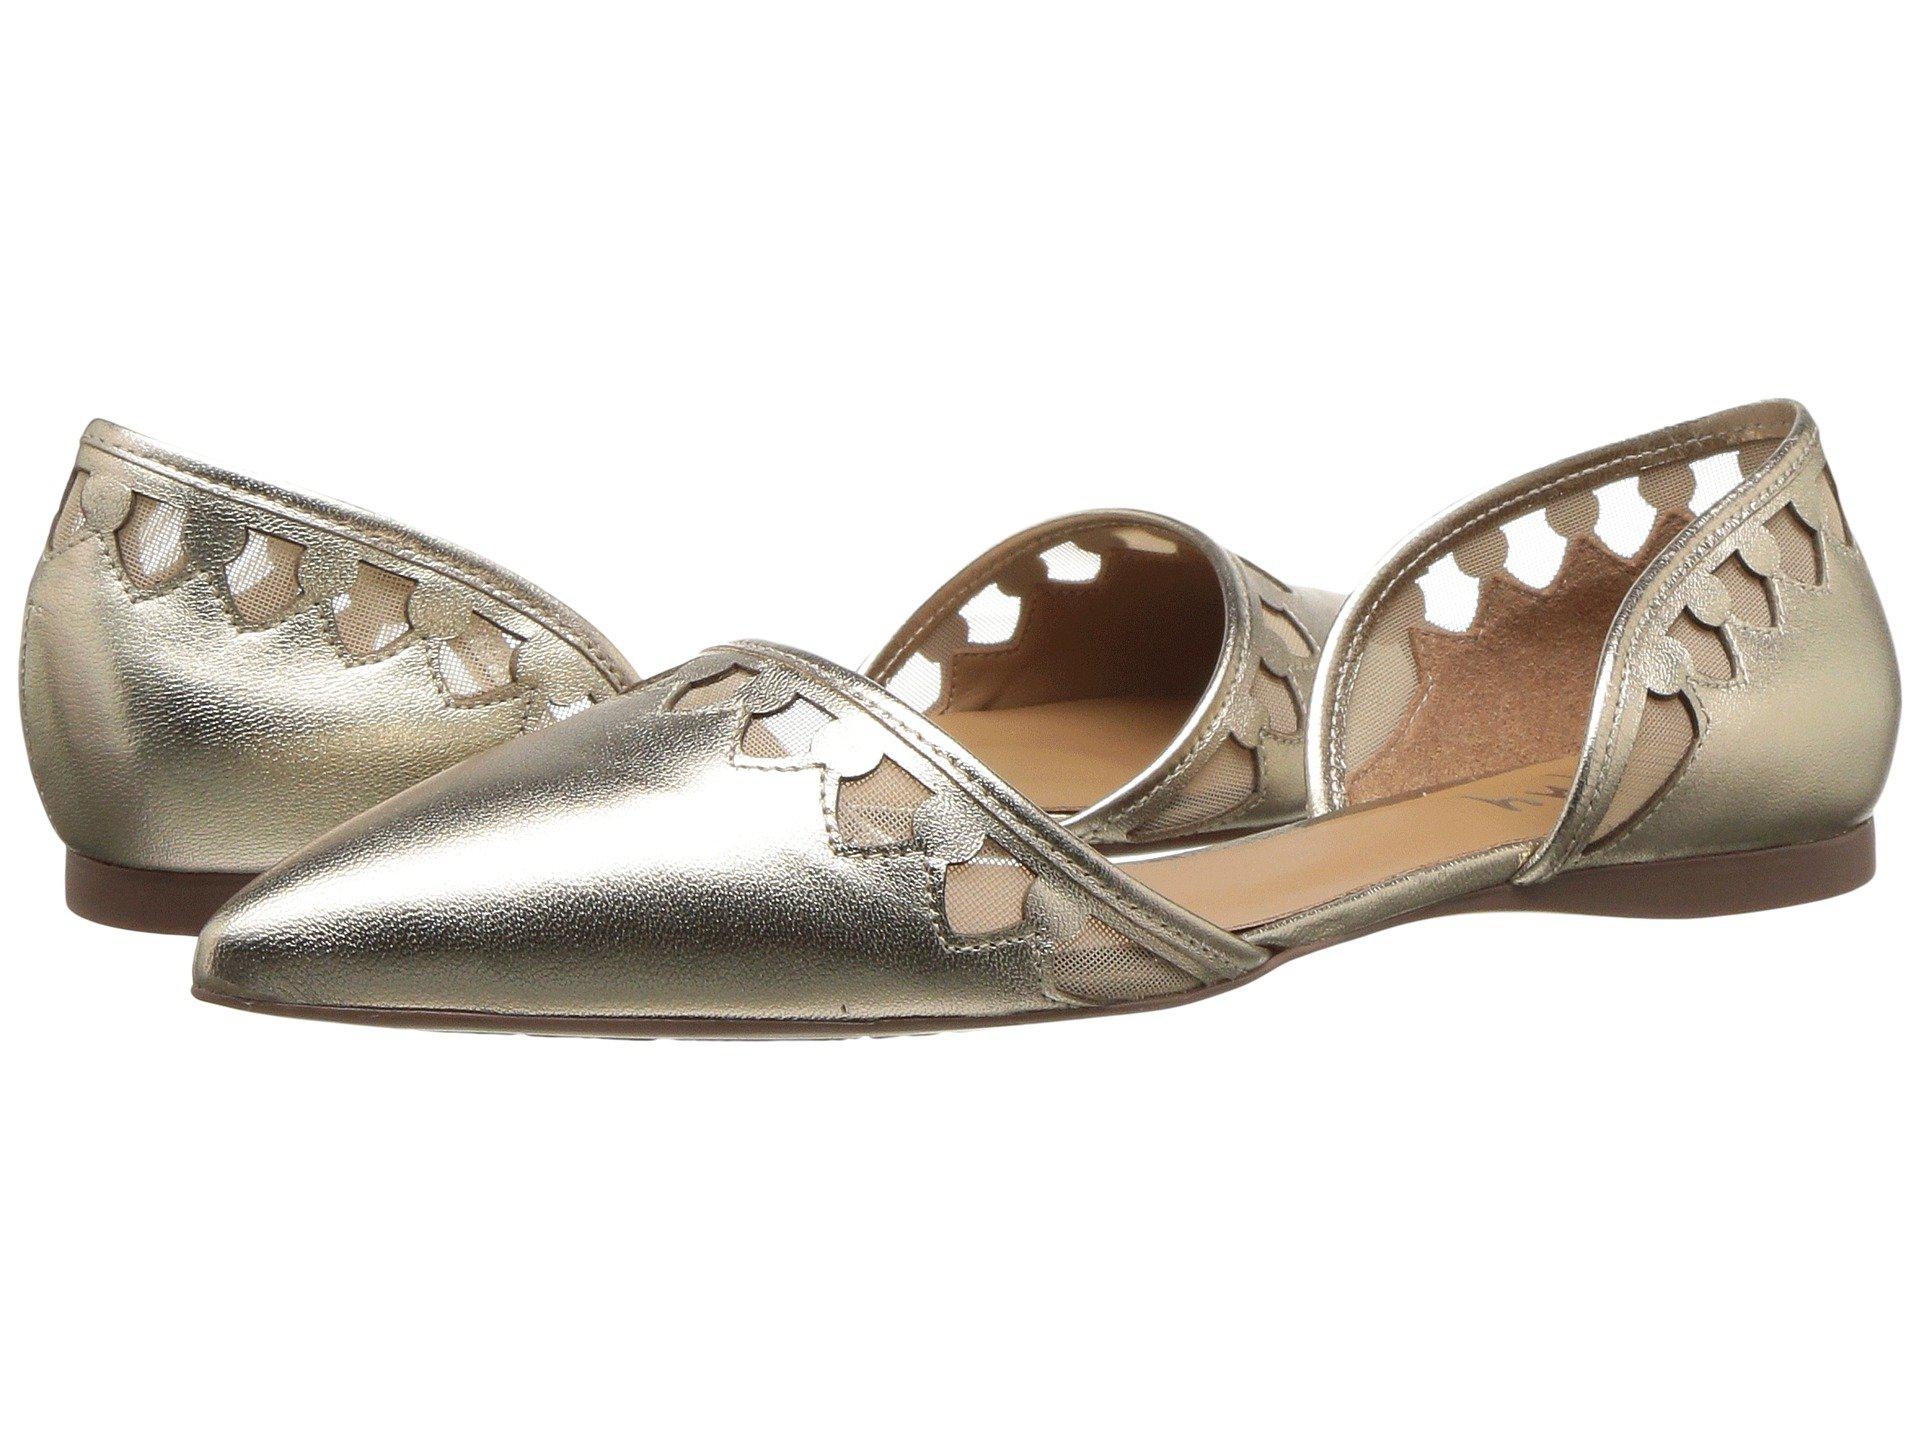 Lyst French Sole Volt Save 50.476190476190474%